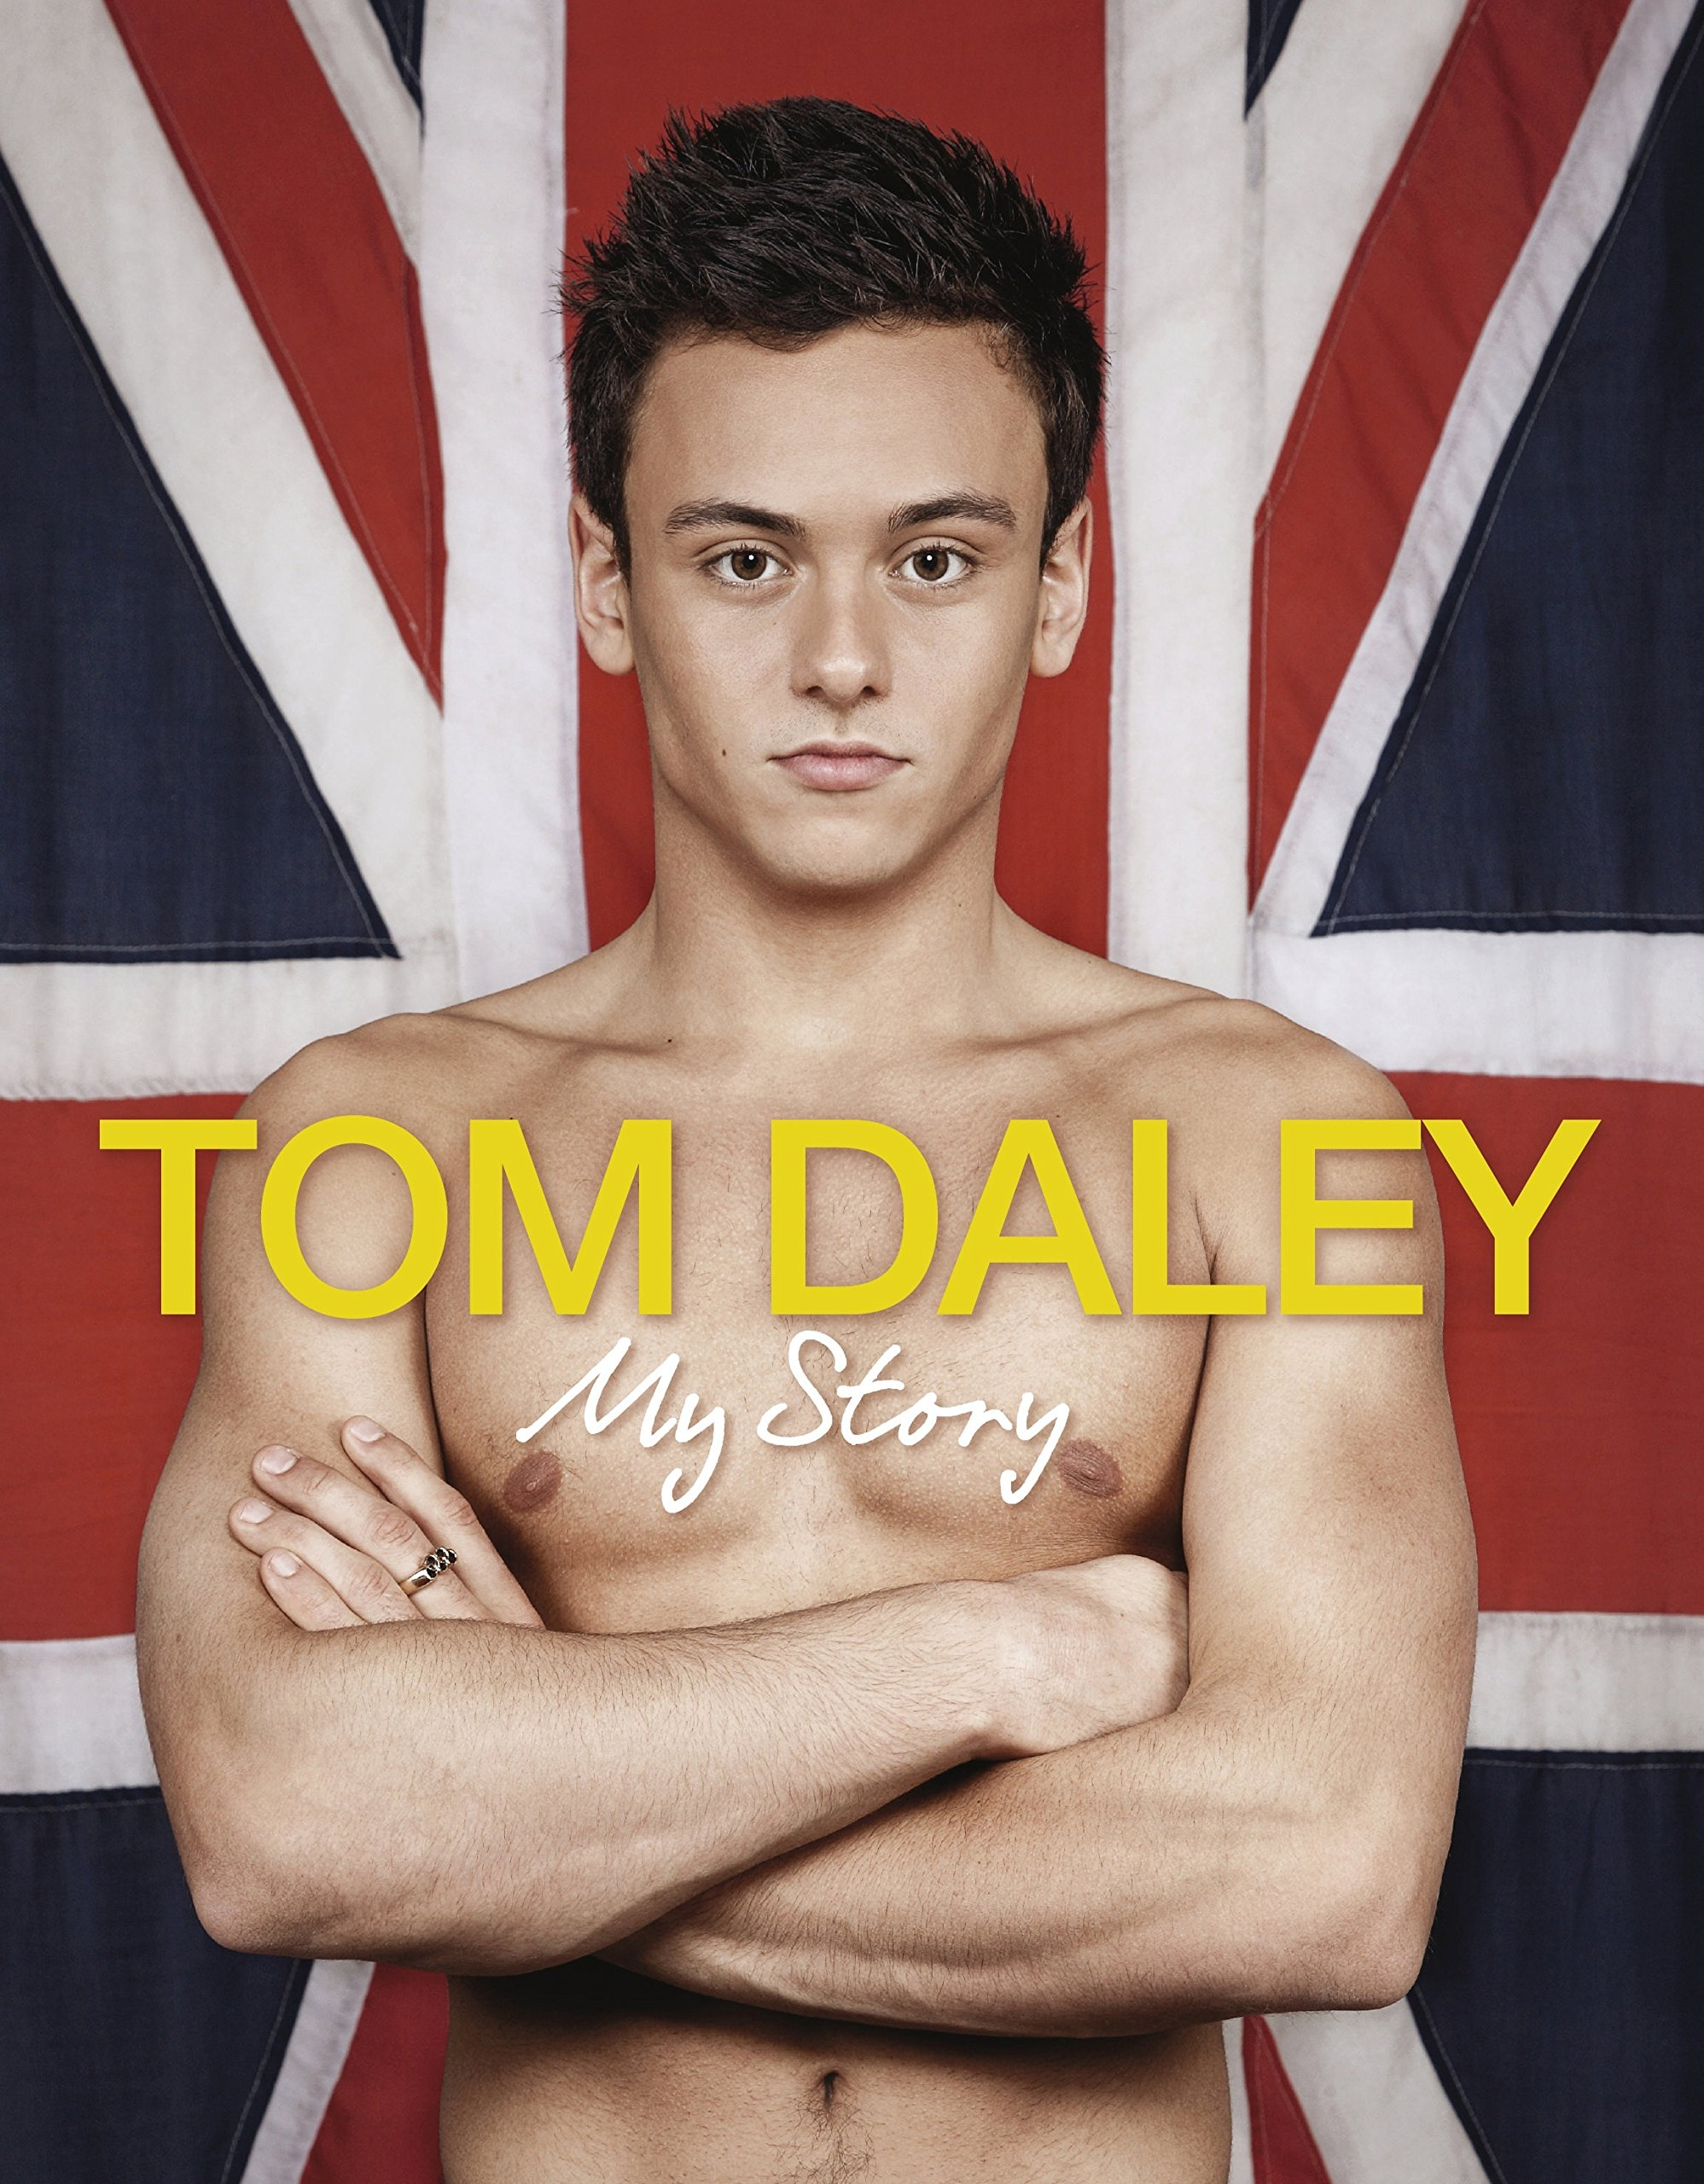 tom daley my story pdf free download